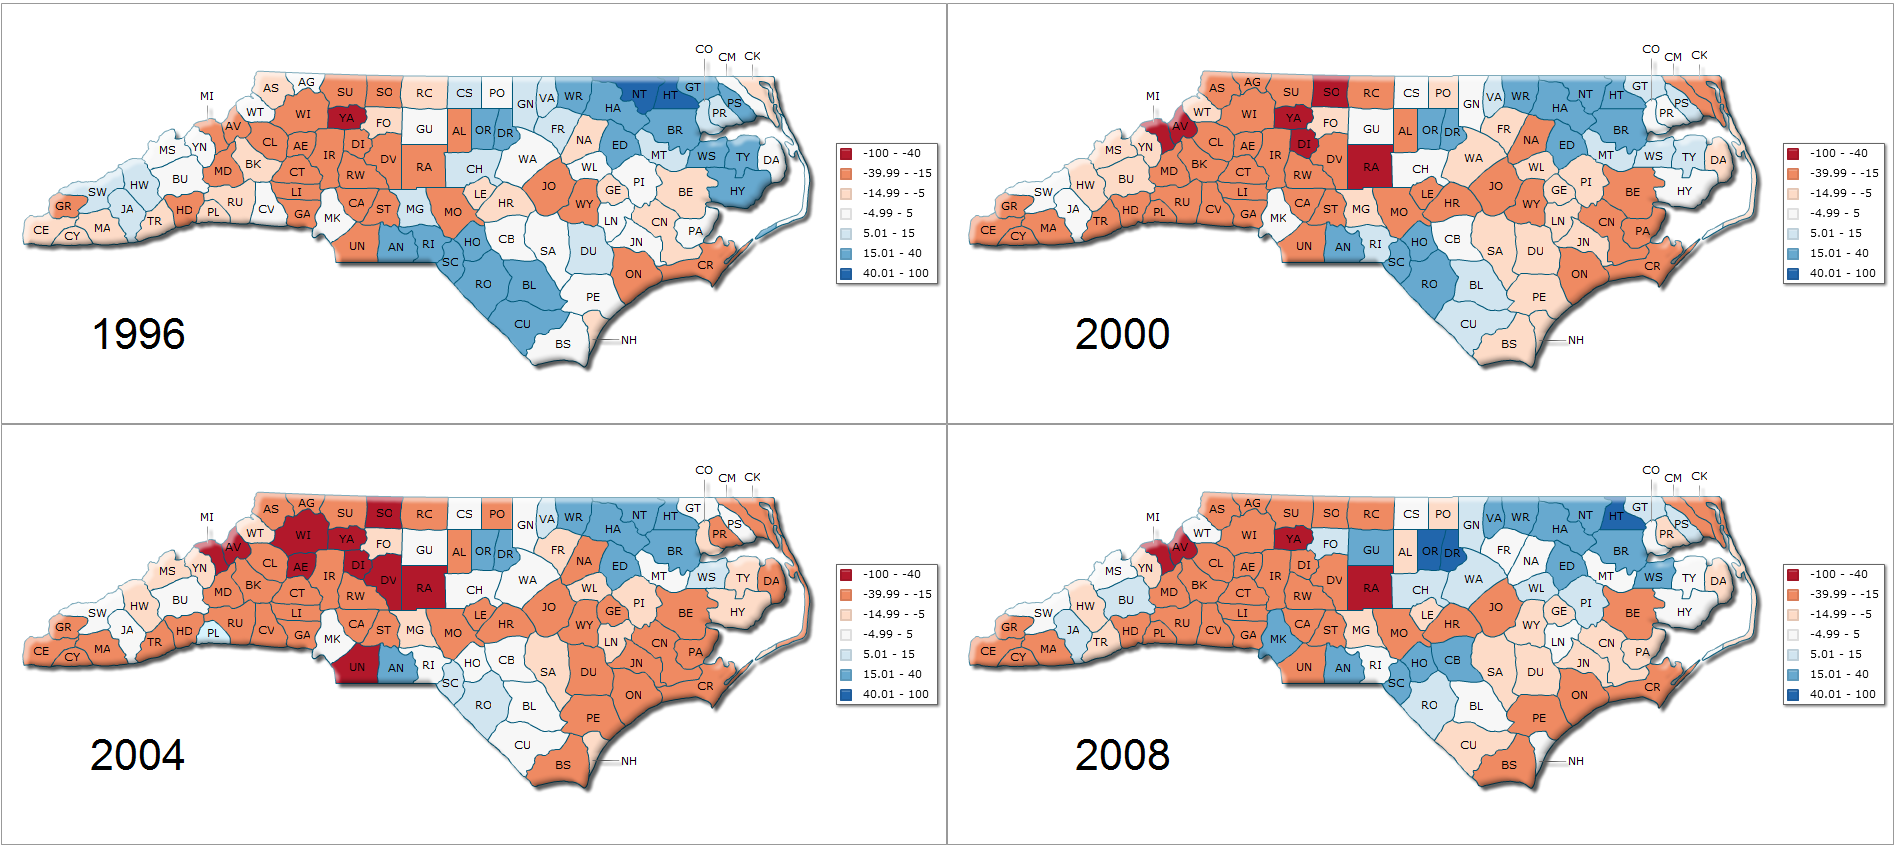 Presidential election results for North Carolina counties 1996-2008